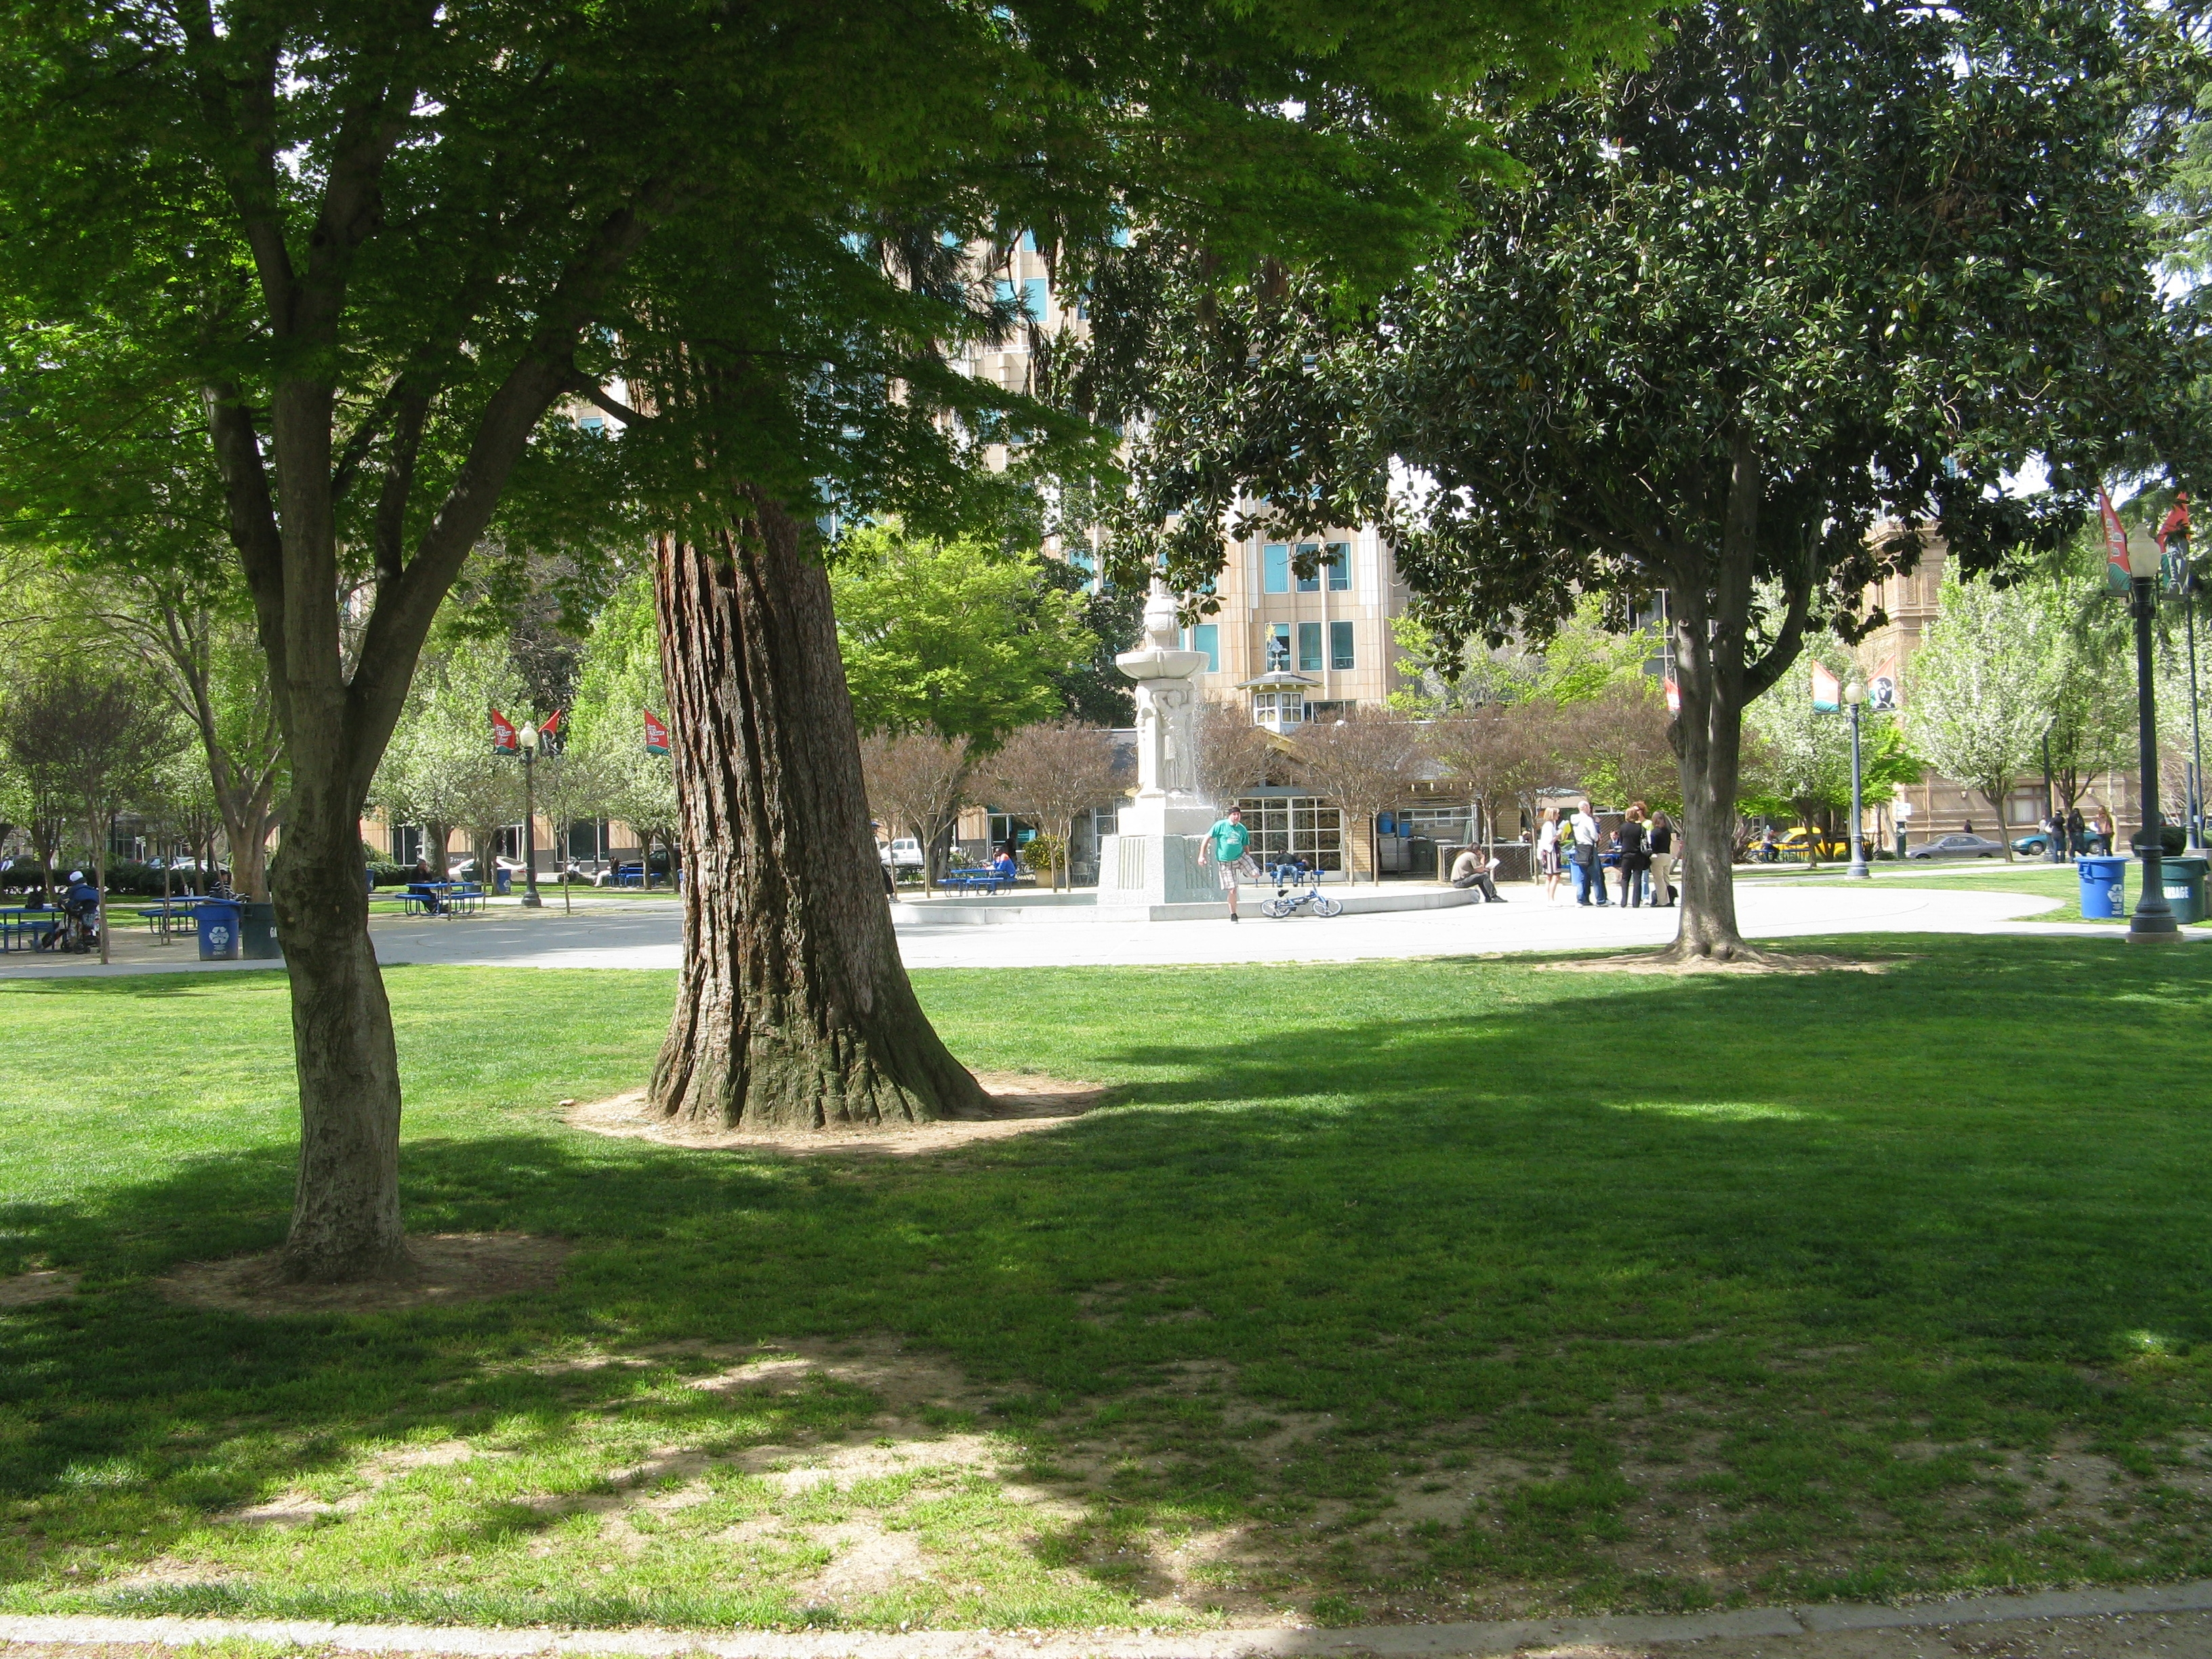 Current Day View of Cesar Chavez Park (Formerly Old City Plaza)